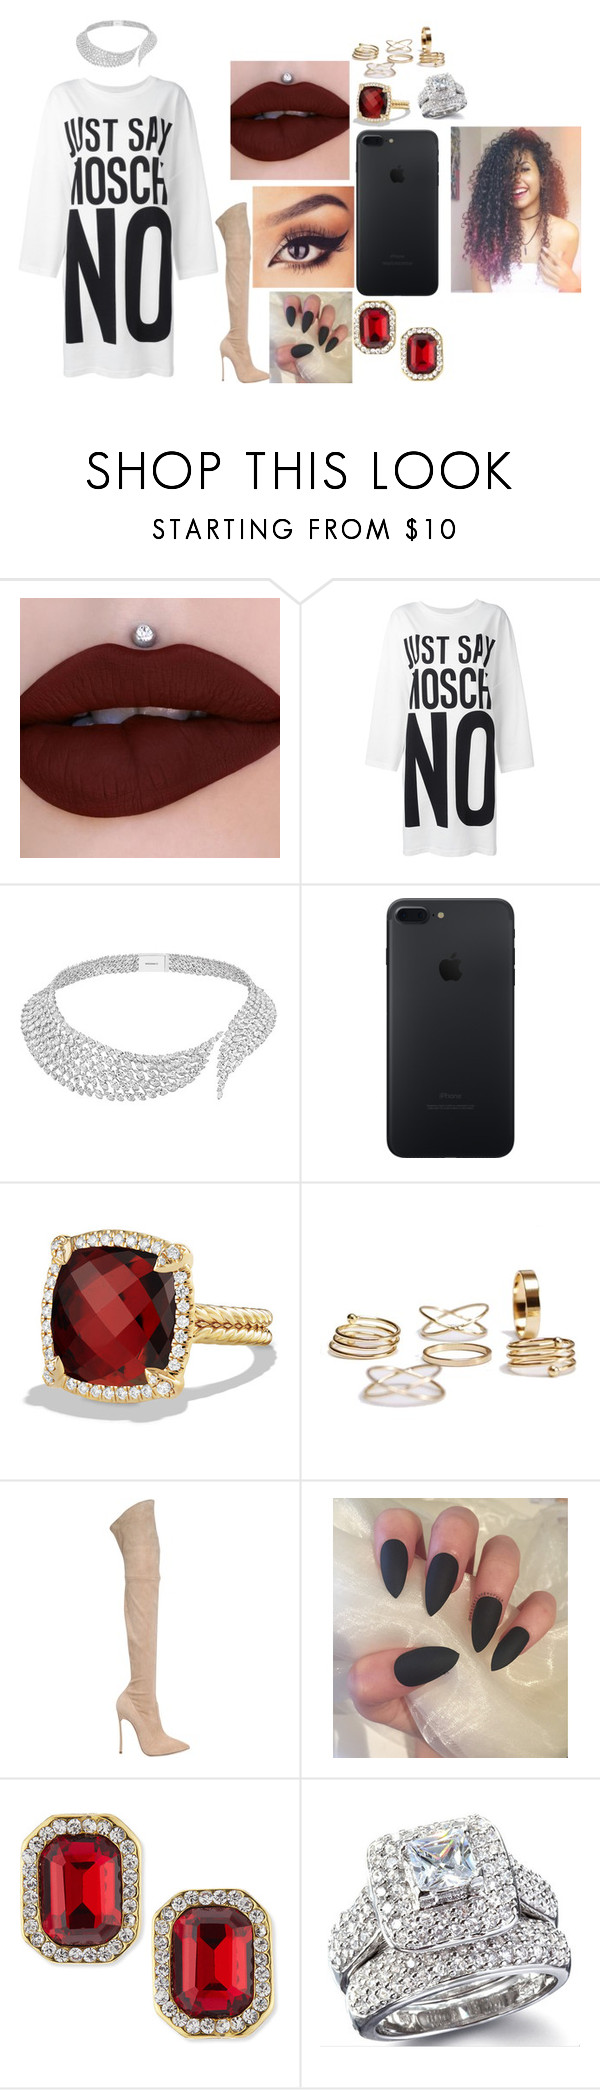 """Sem título #802"" by samaralucia on Polyvore featuring moda, Moschino, Messika, David Yurman, Casadei e Kenneth Jay Lane"